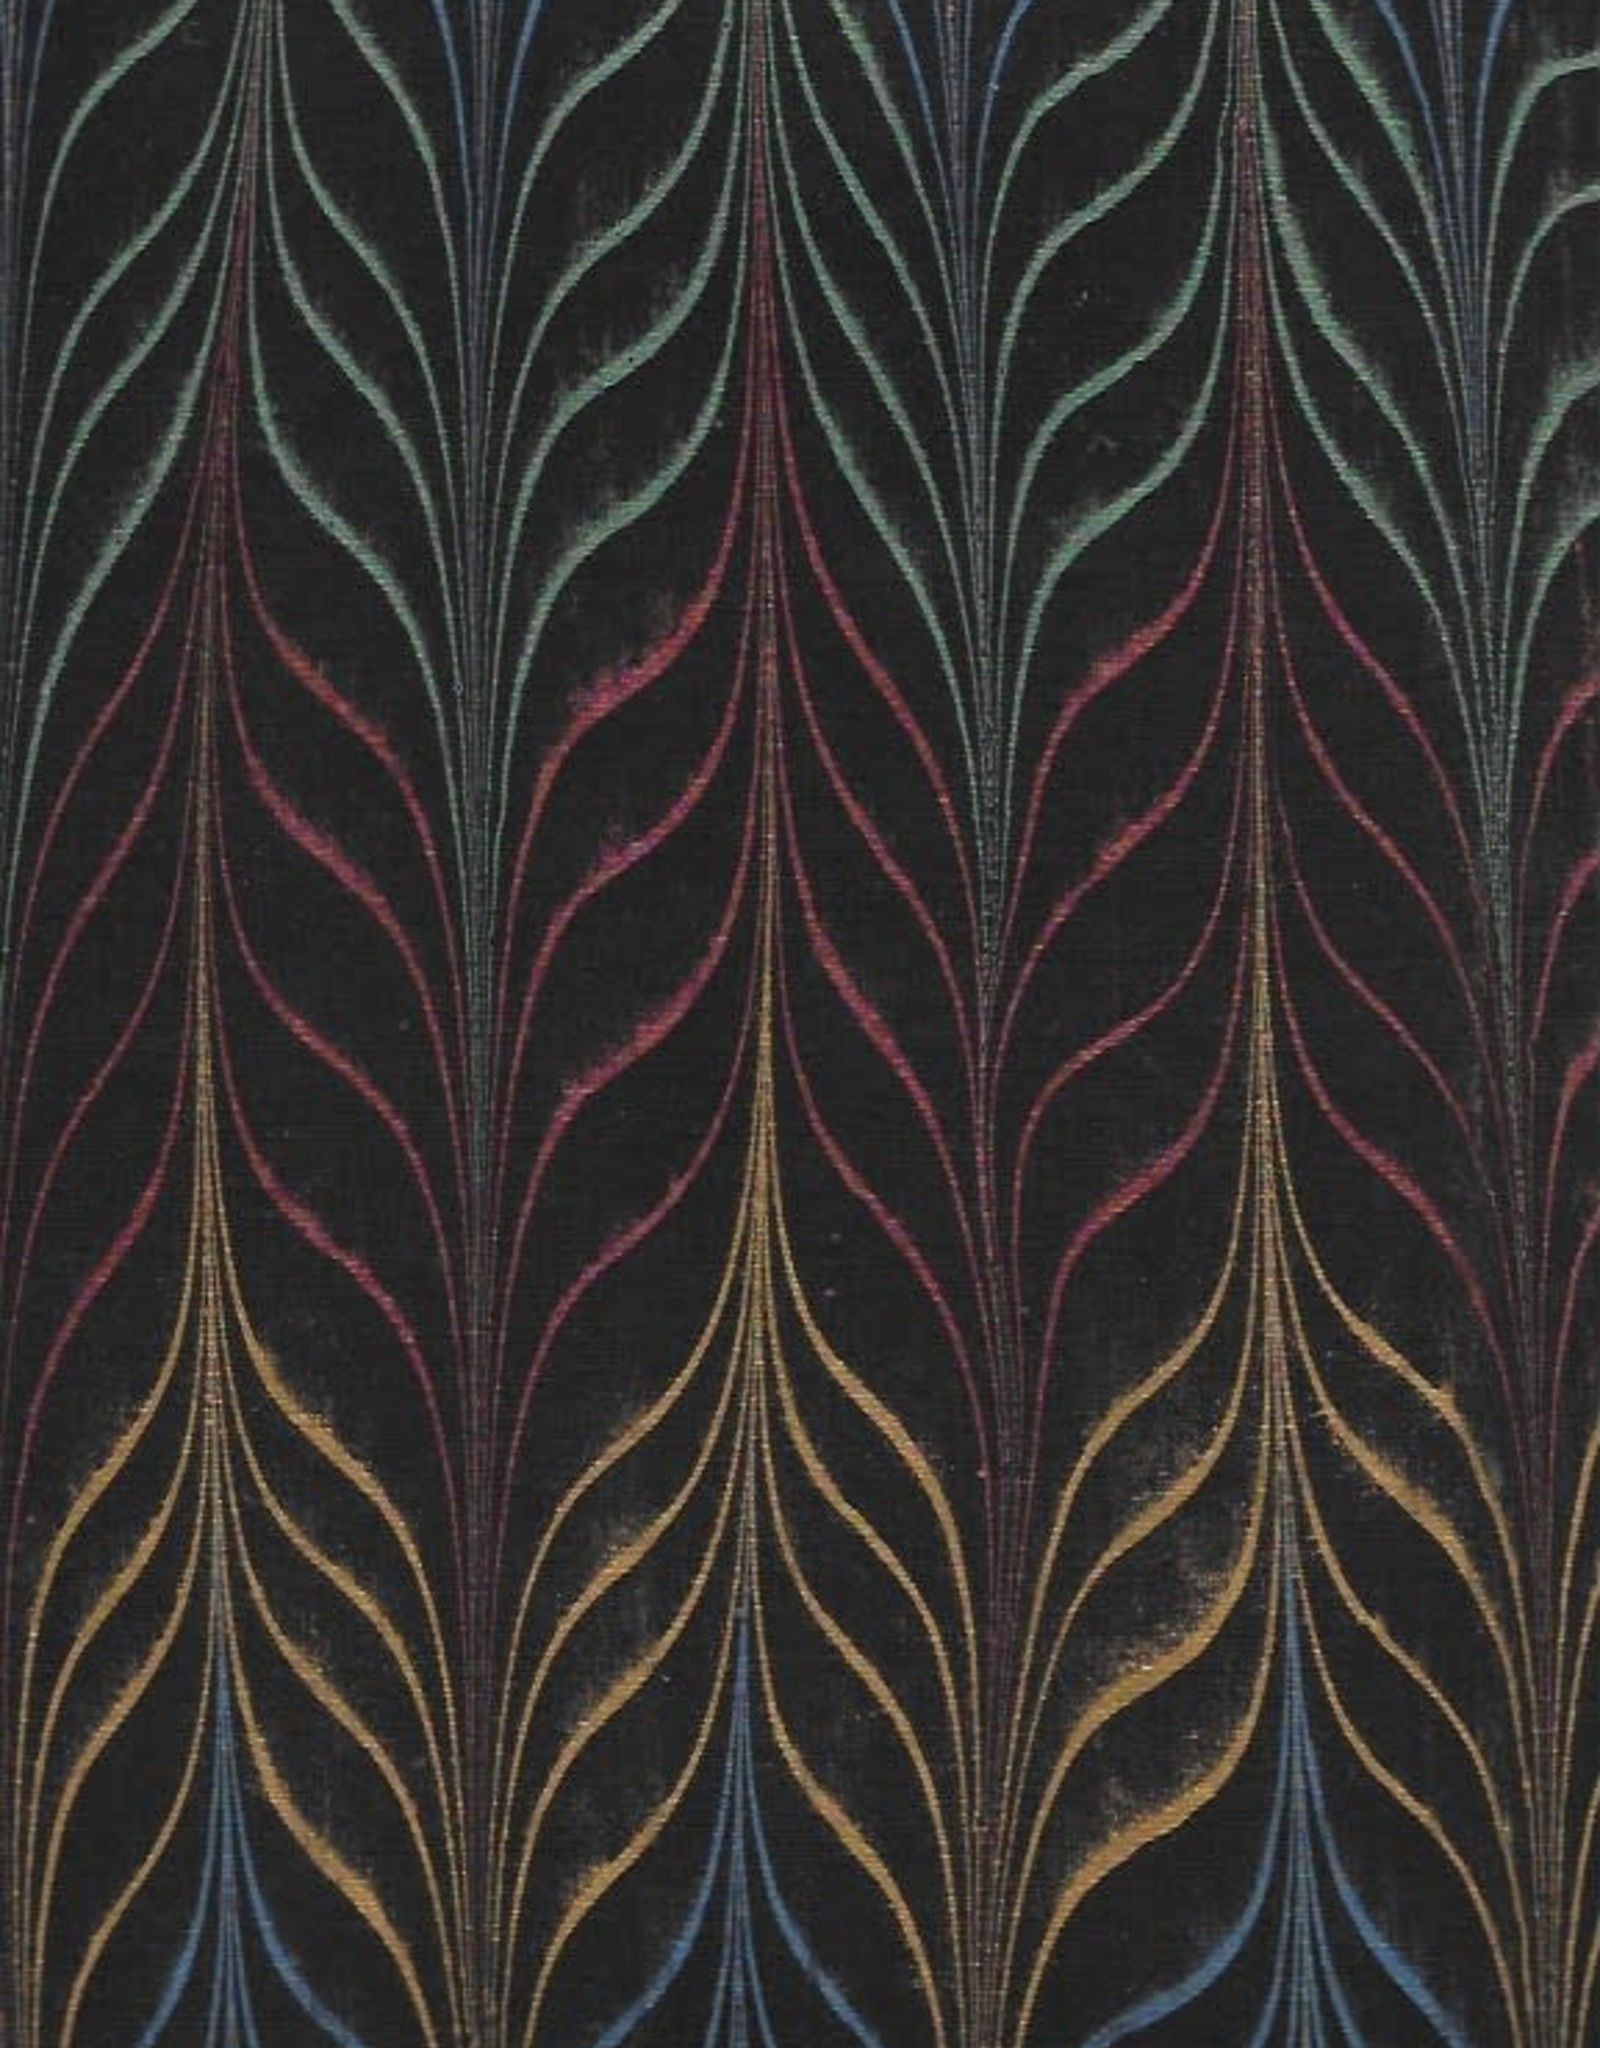 """Indian Marble: Metallic Red, Yellow, Green, Blue on Black, Long Feather Design, 22"""" x 30"""""""